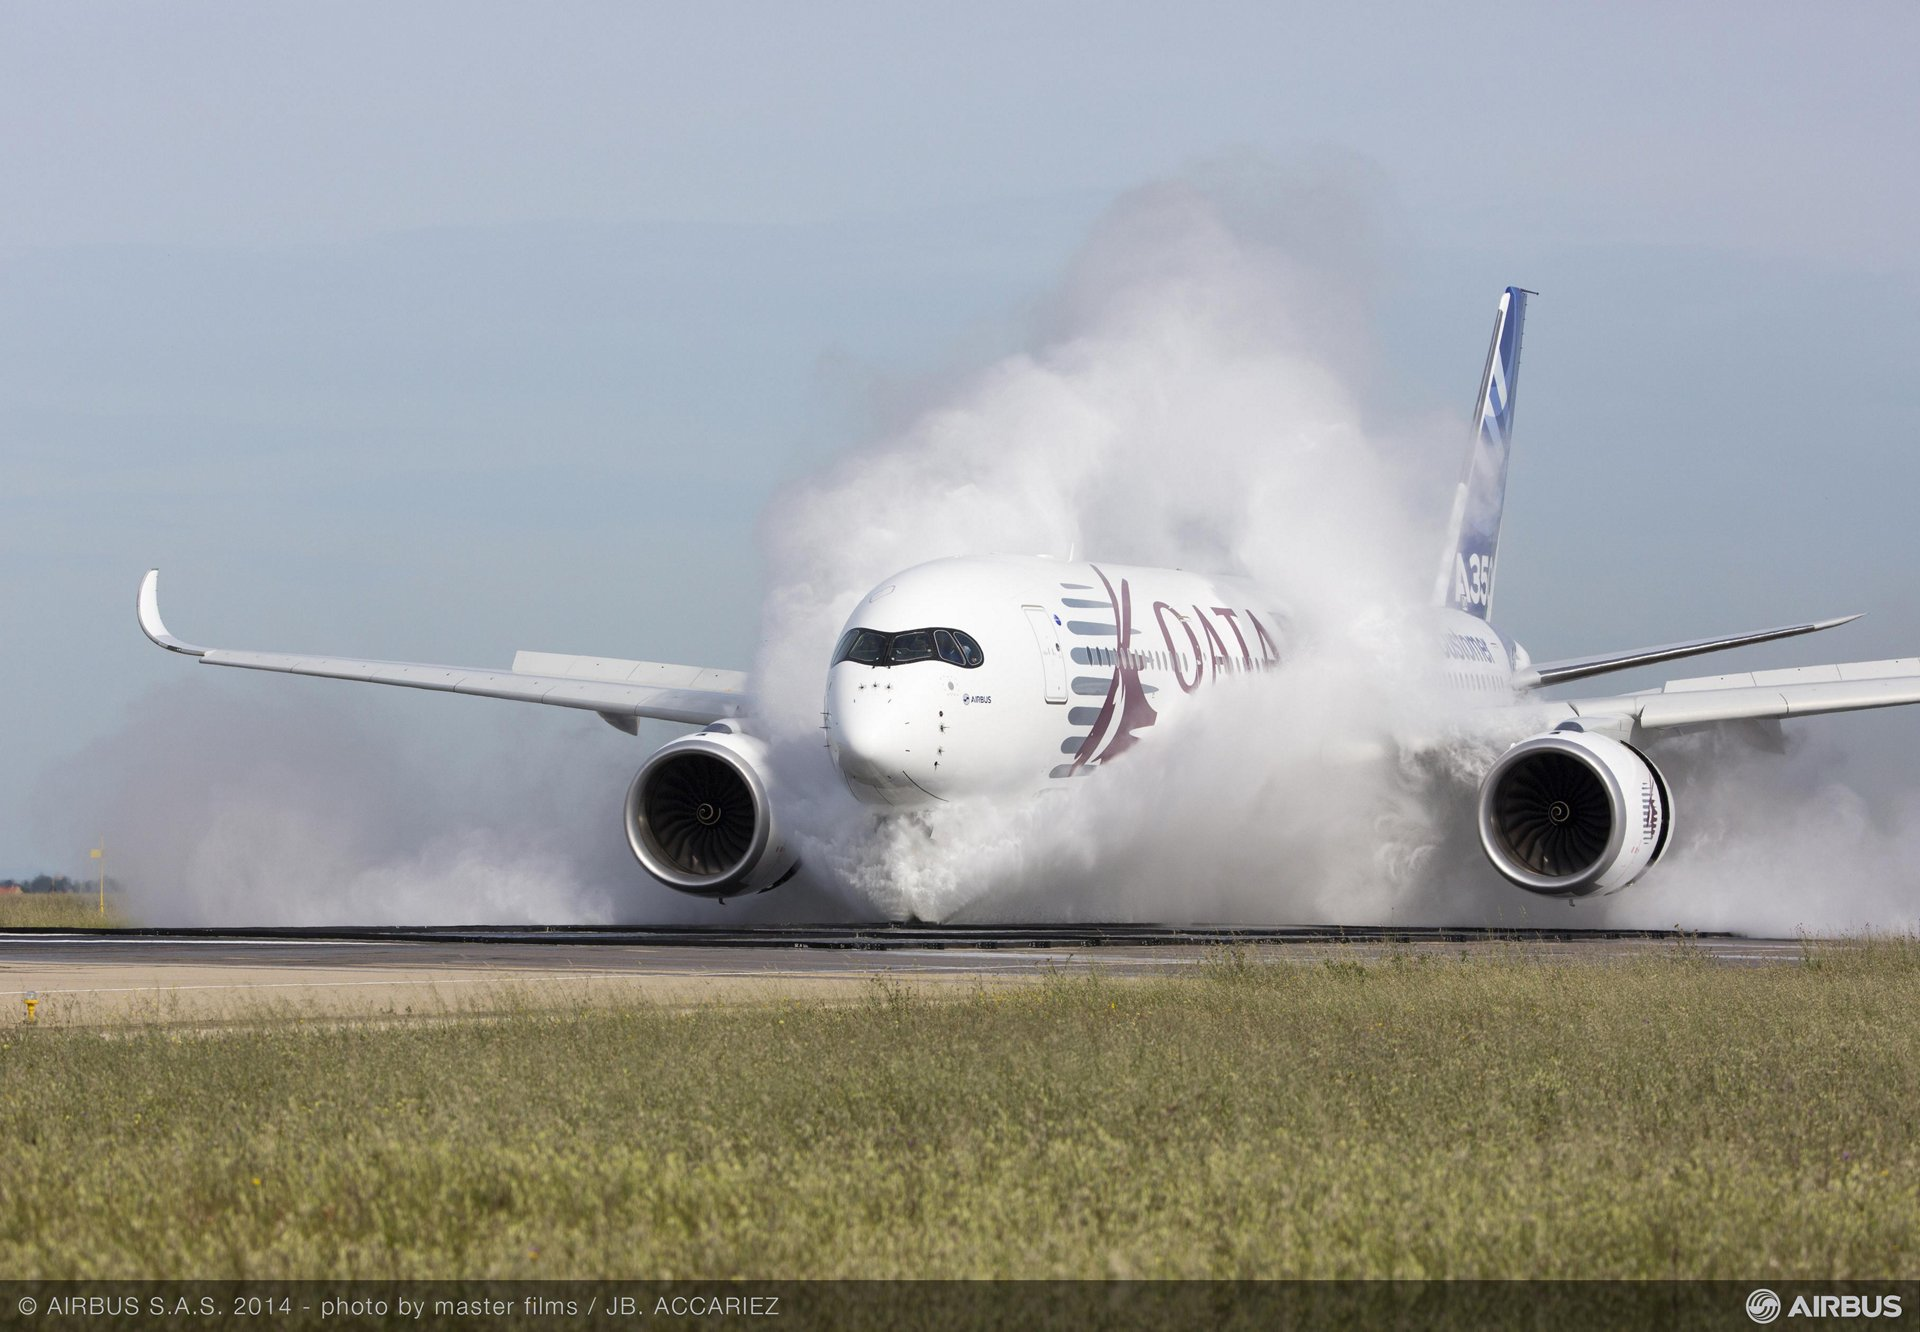 The Airbus A350 XWB's ability to operate on wet runways was demonstrated during successful water ingestion tests conducted at Istres, France